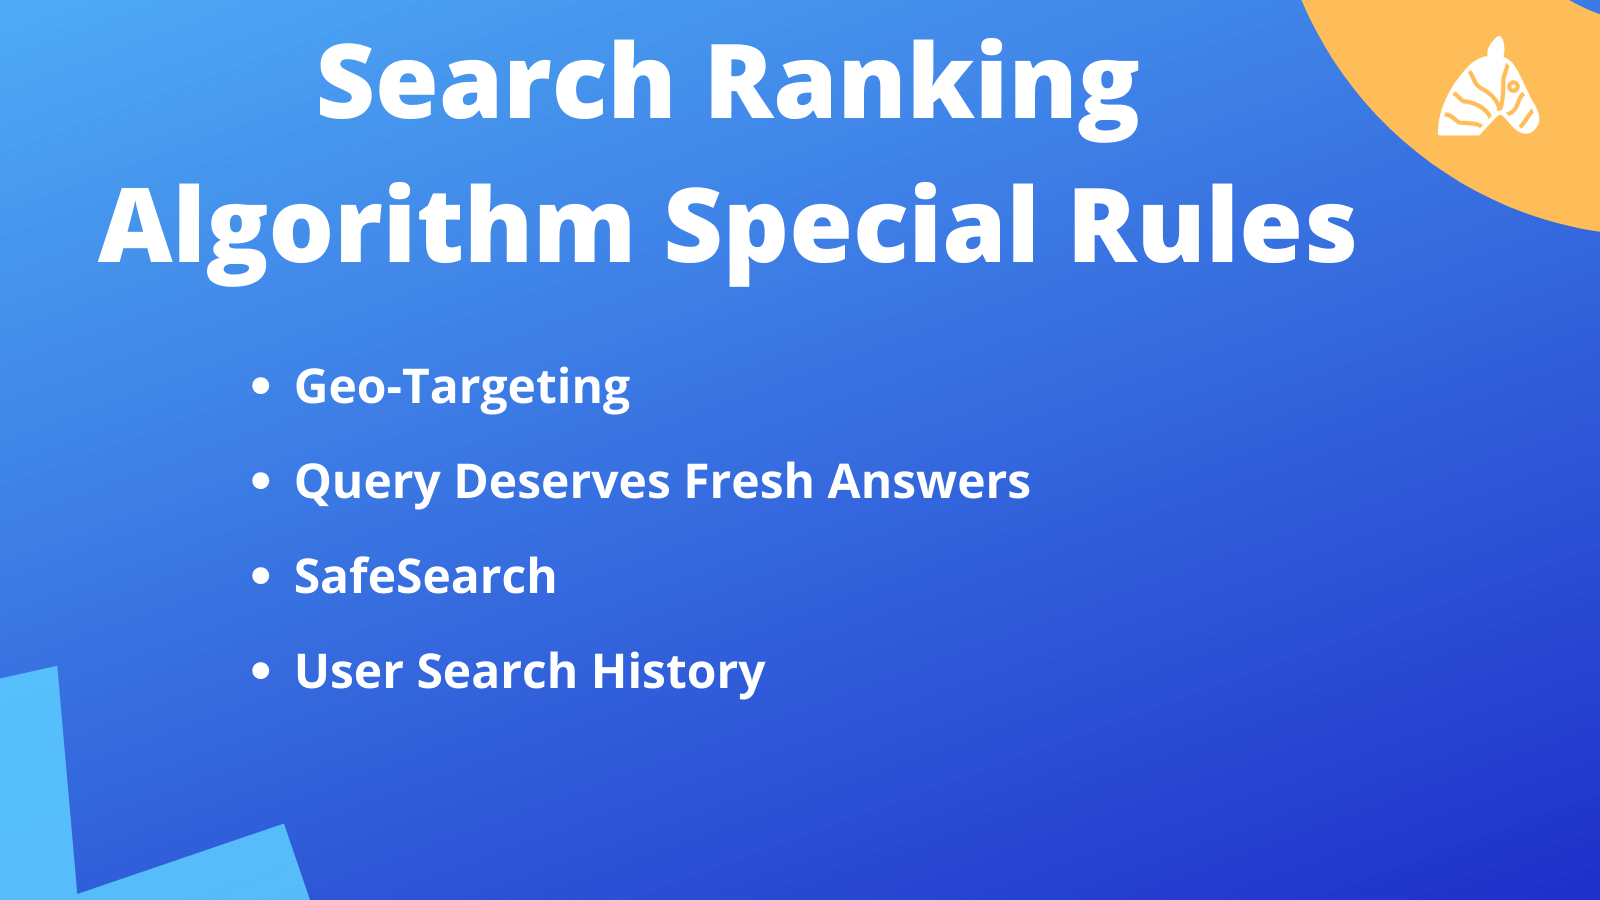 Search ranking algorithm special rules